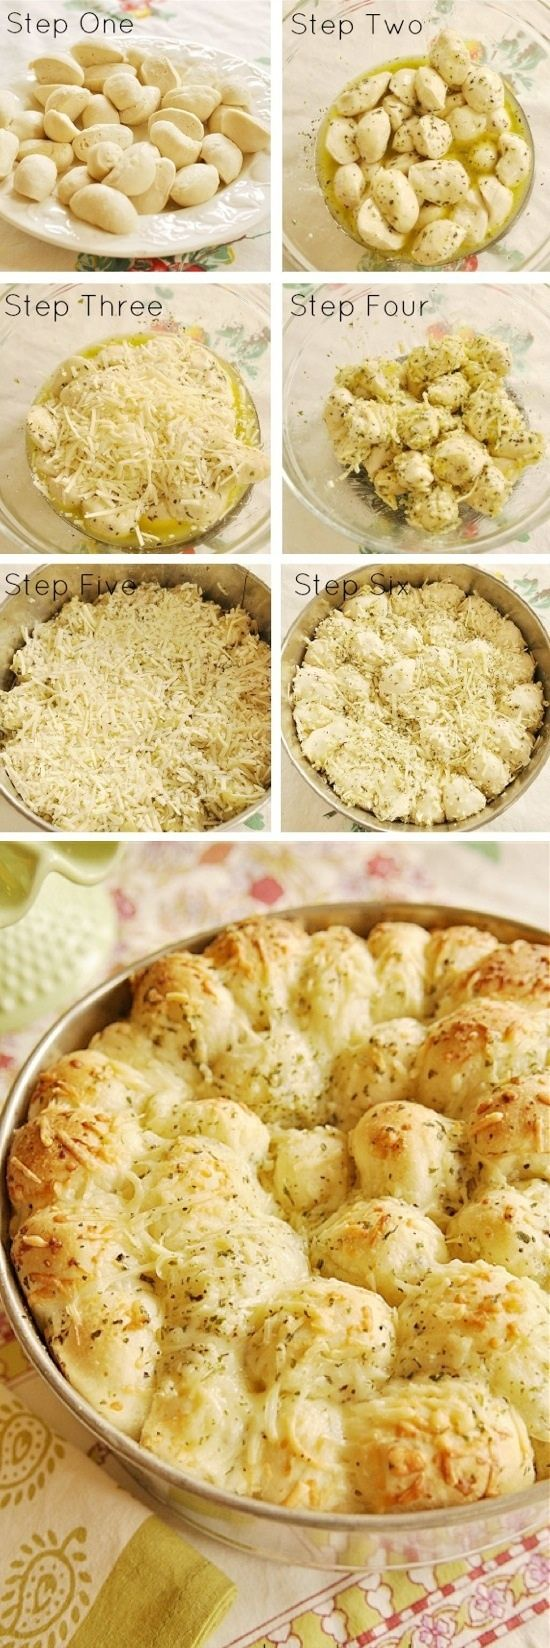 Garlic Cheese Pull-Apart Bread 16 frozen white dinner rolls (Rhodes brand) ½ C butter, melted 1 C grated Parmesan cheese, divided 1 tsp dry parsley flakes 1½ tsp garlic powder ½ tsp salt ½ tsp Italian seasoning ½ tsp onion powder